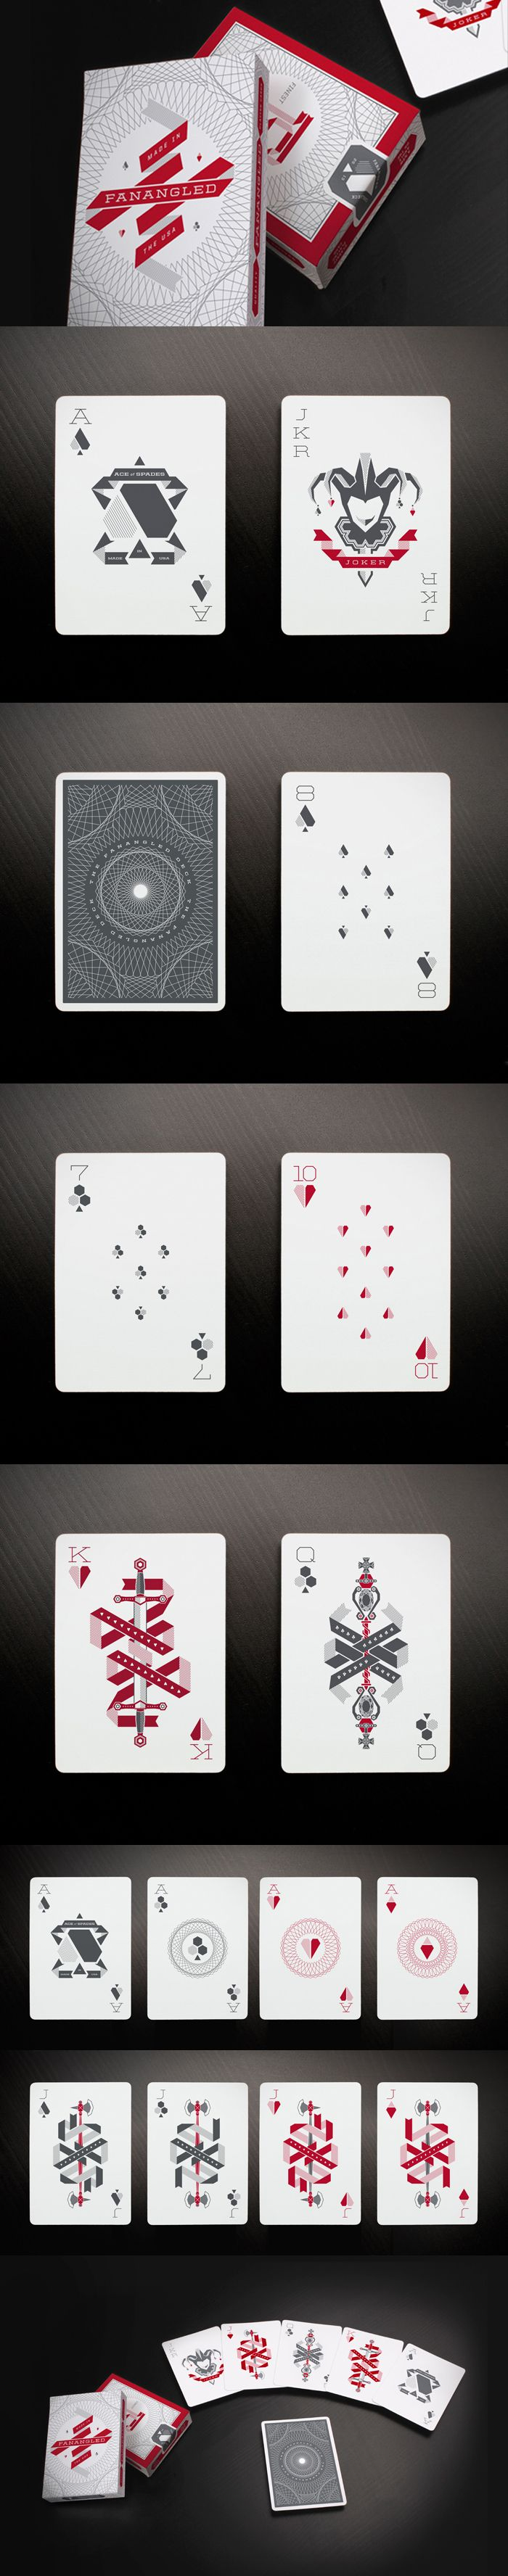 Three Card Poker Online – Play for Free with No Downloads